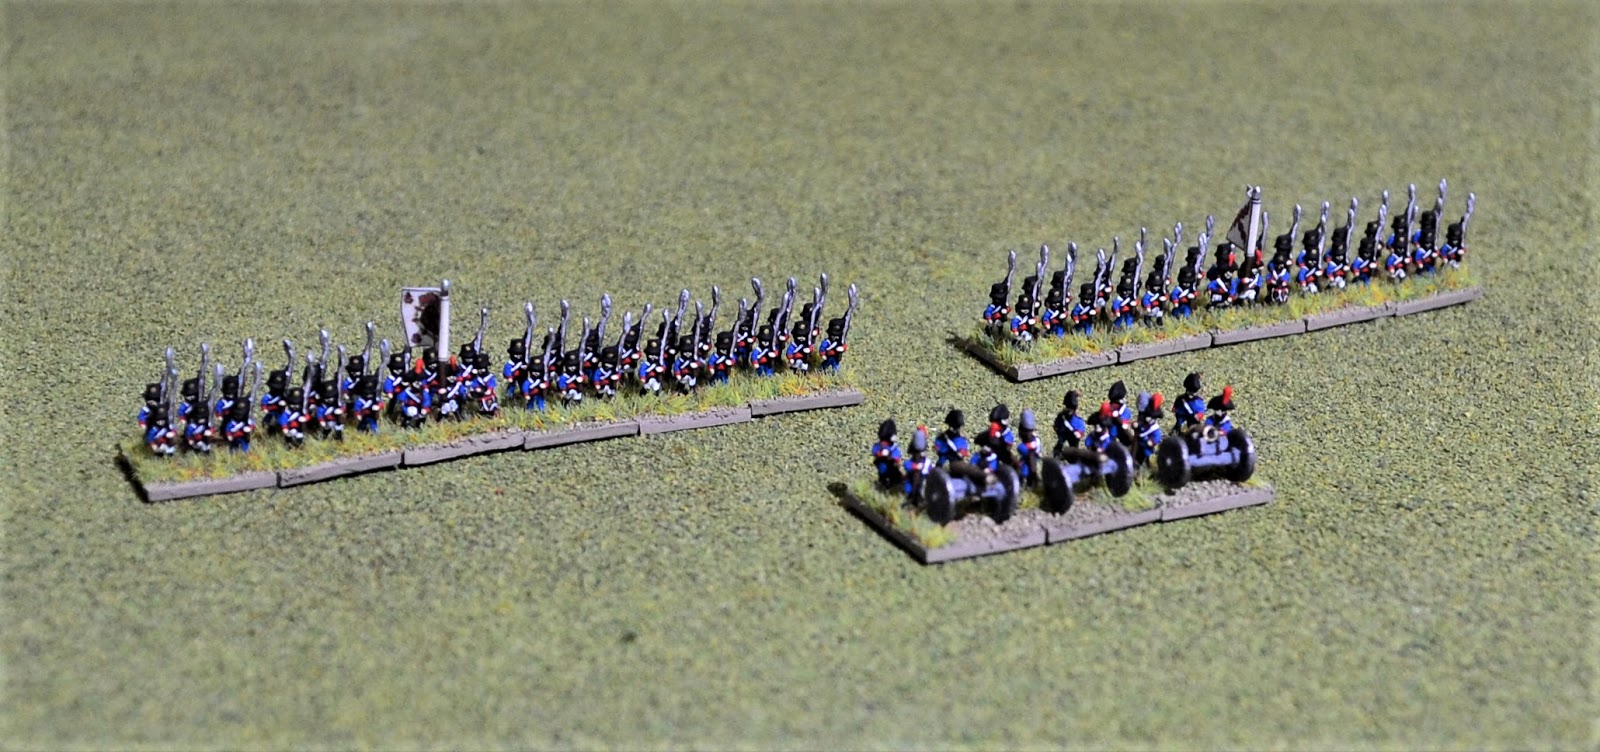 Grymauch's Solo Wargaming Blog : On the Workbench: More 6mm Spanish